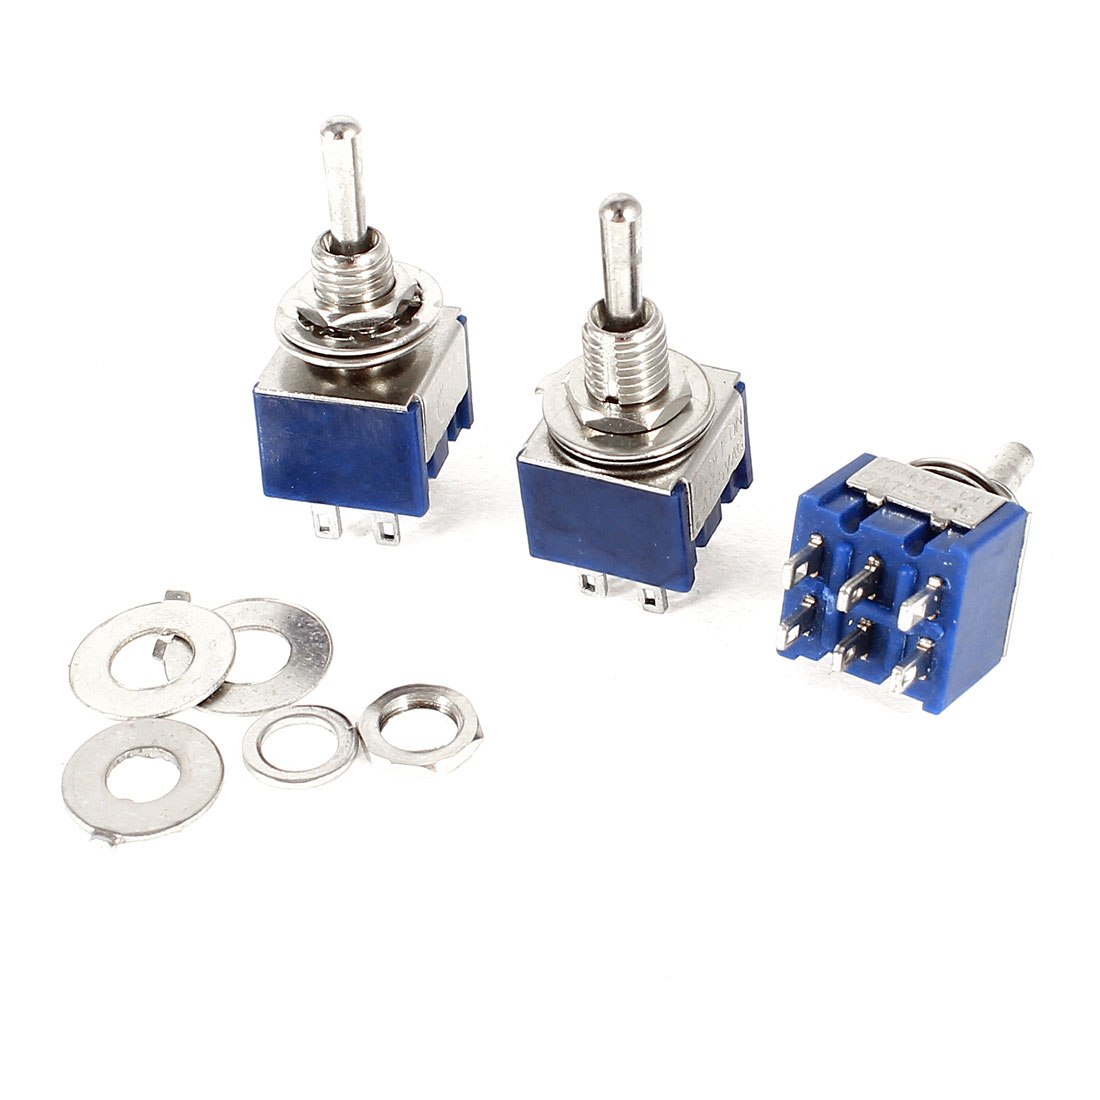 3pcs On/Off/On DPDT 6 Terminals Mini Latching Toggle Switch AC 125V 6A